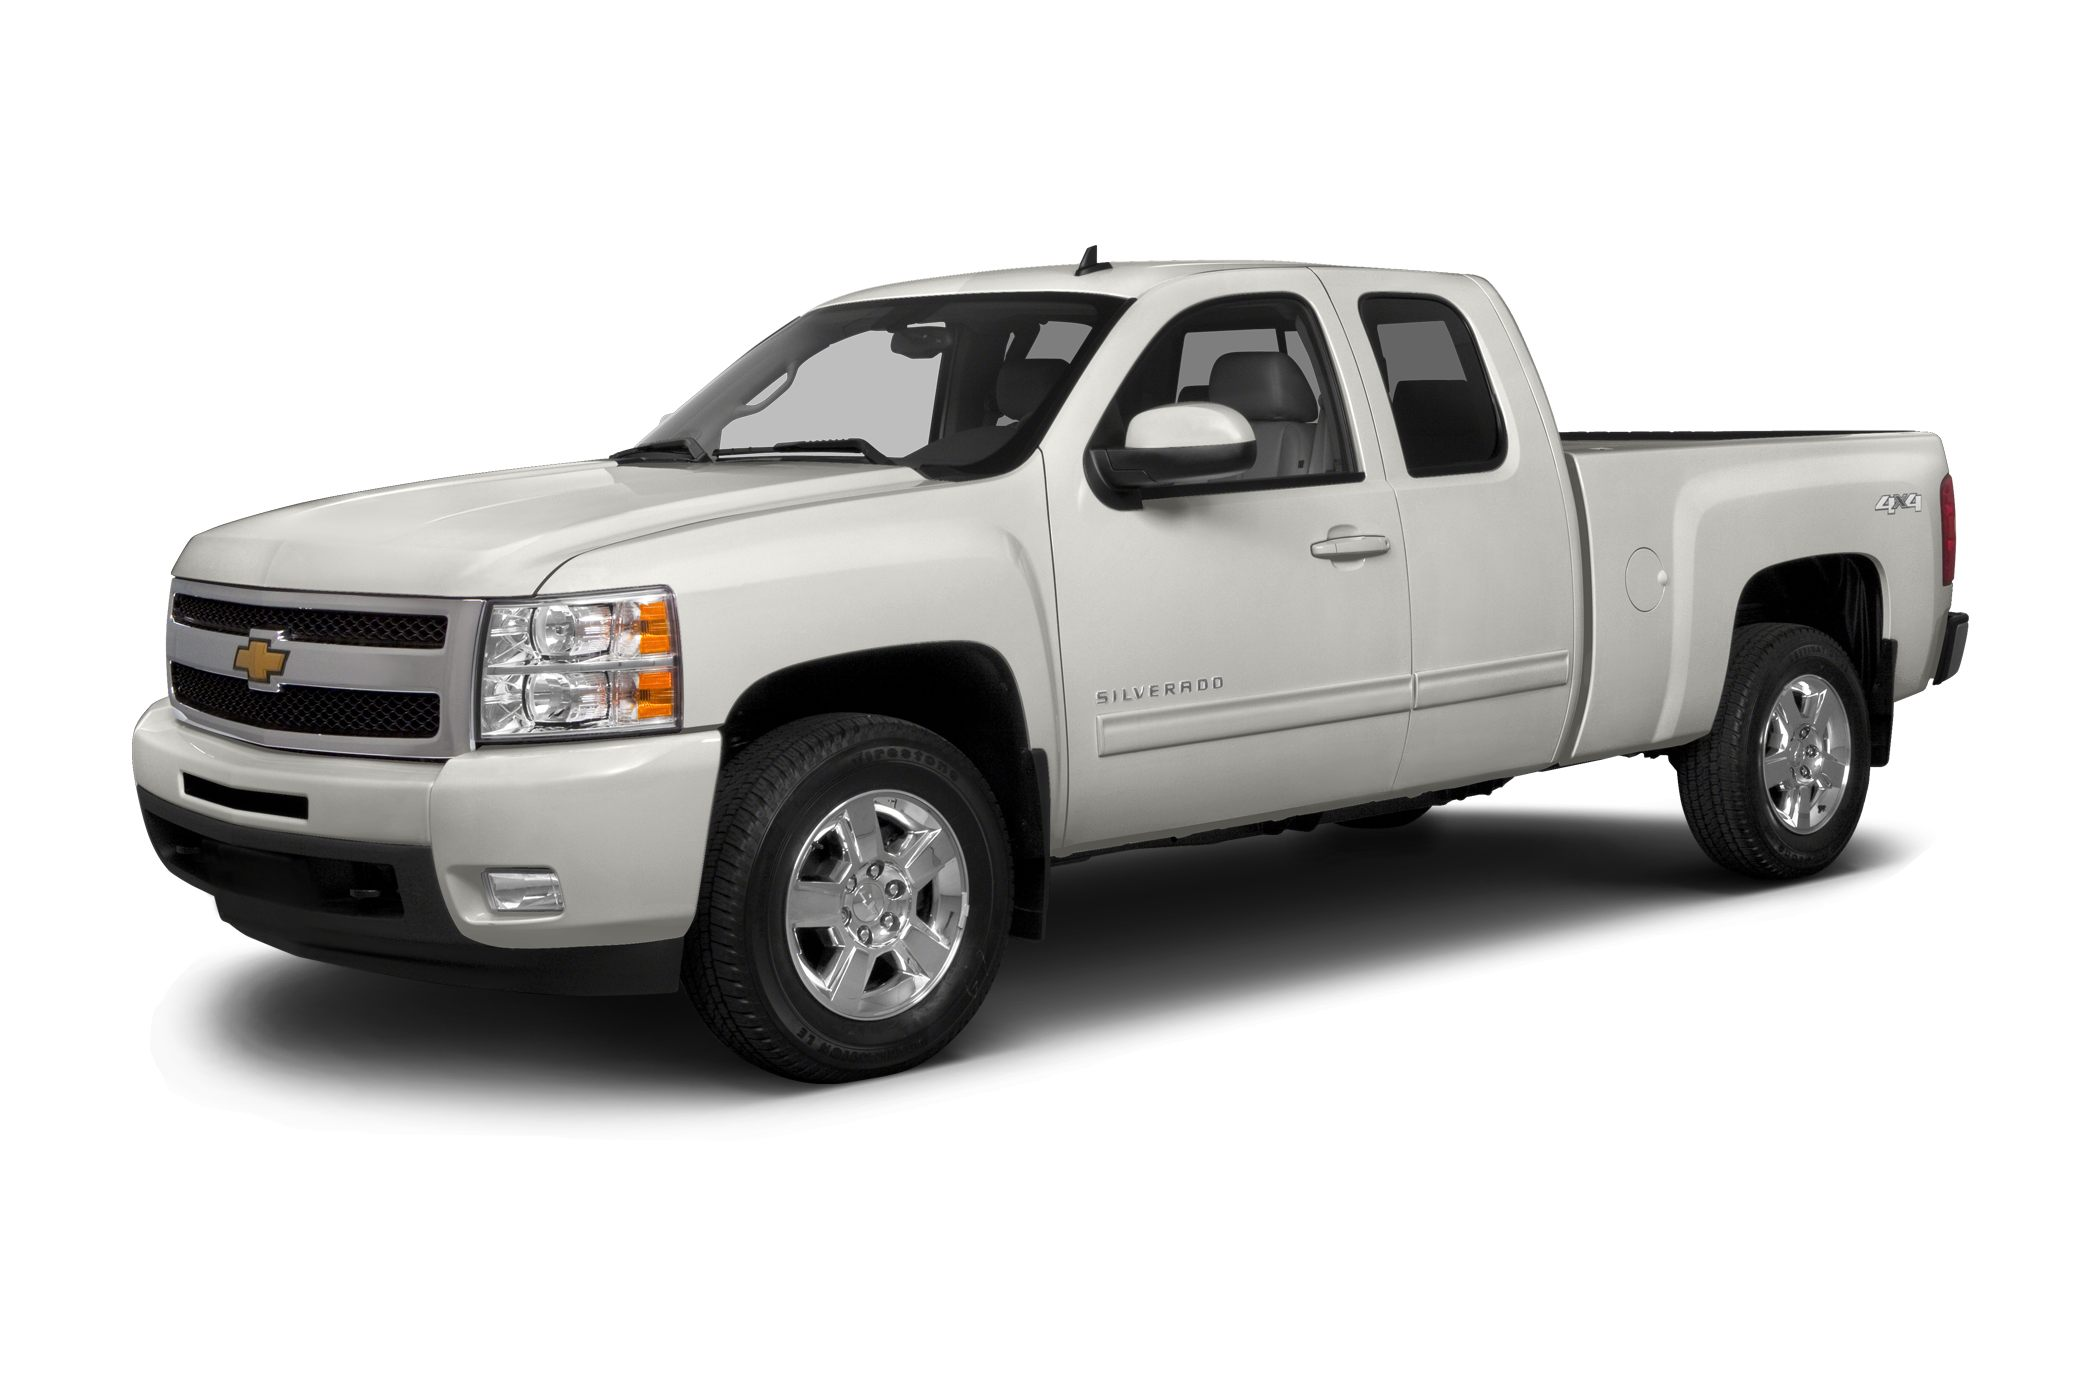 2013 Chevrolet Silverado 1500 LS Crew Cab Pickup for sale in Livingston for $25,000 with 22,804 miles.